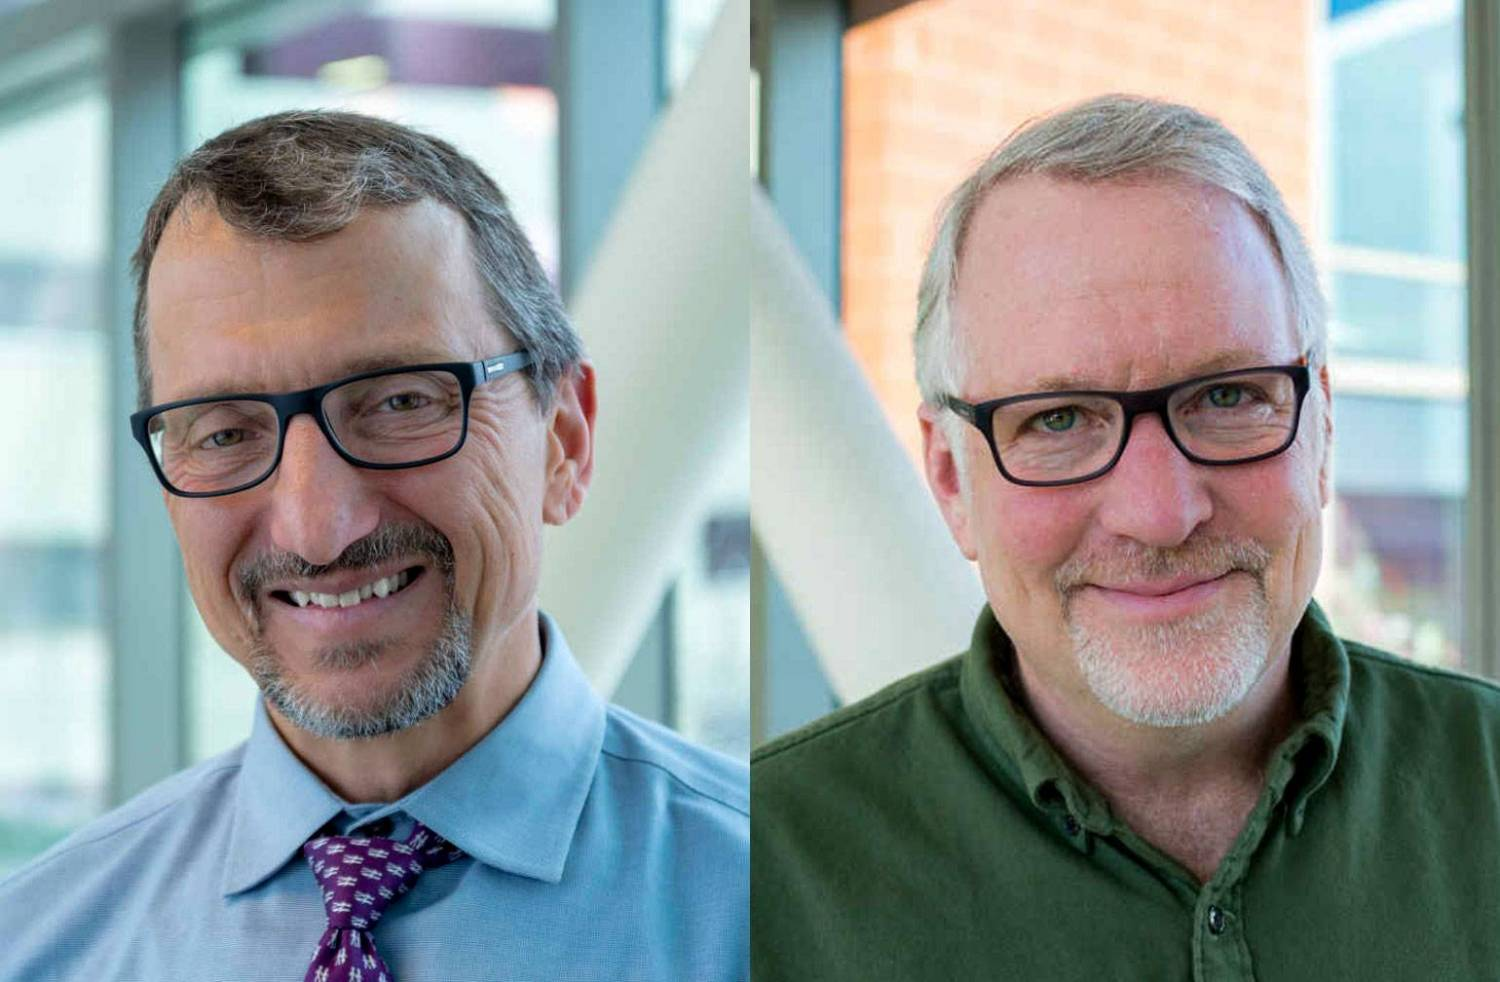 Gillette Children's Specialty Healthcare orthopedic surgeon, Tom Novacheck, MD, and clinical scientist, Michael Schwartz, PhD collaborated on a new book to improve the lives of people who have cerebral palsy and mobility challenges.